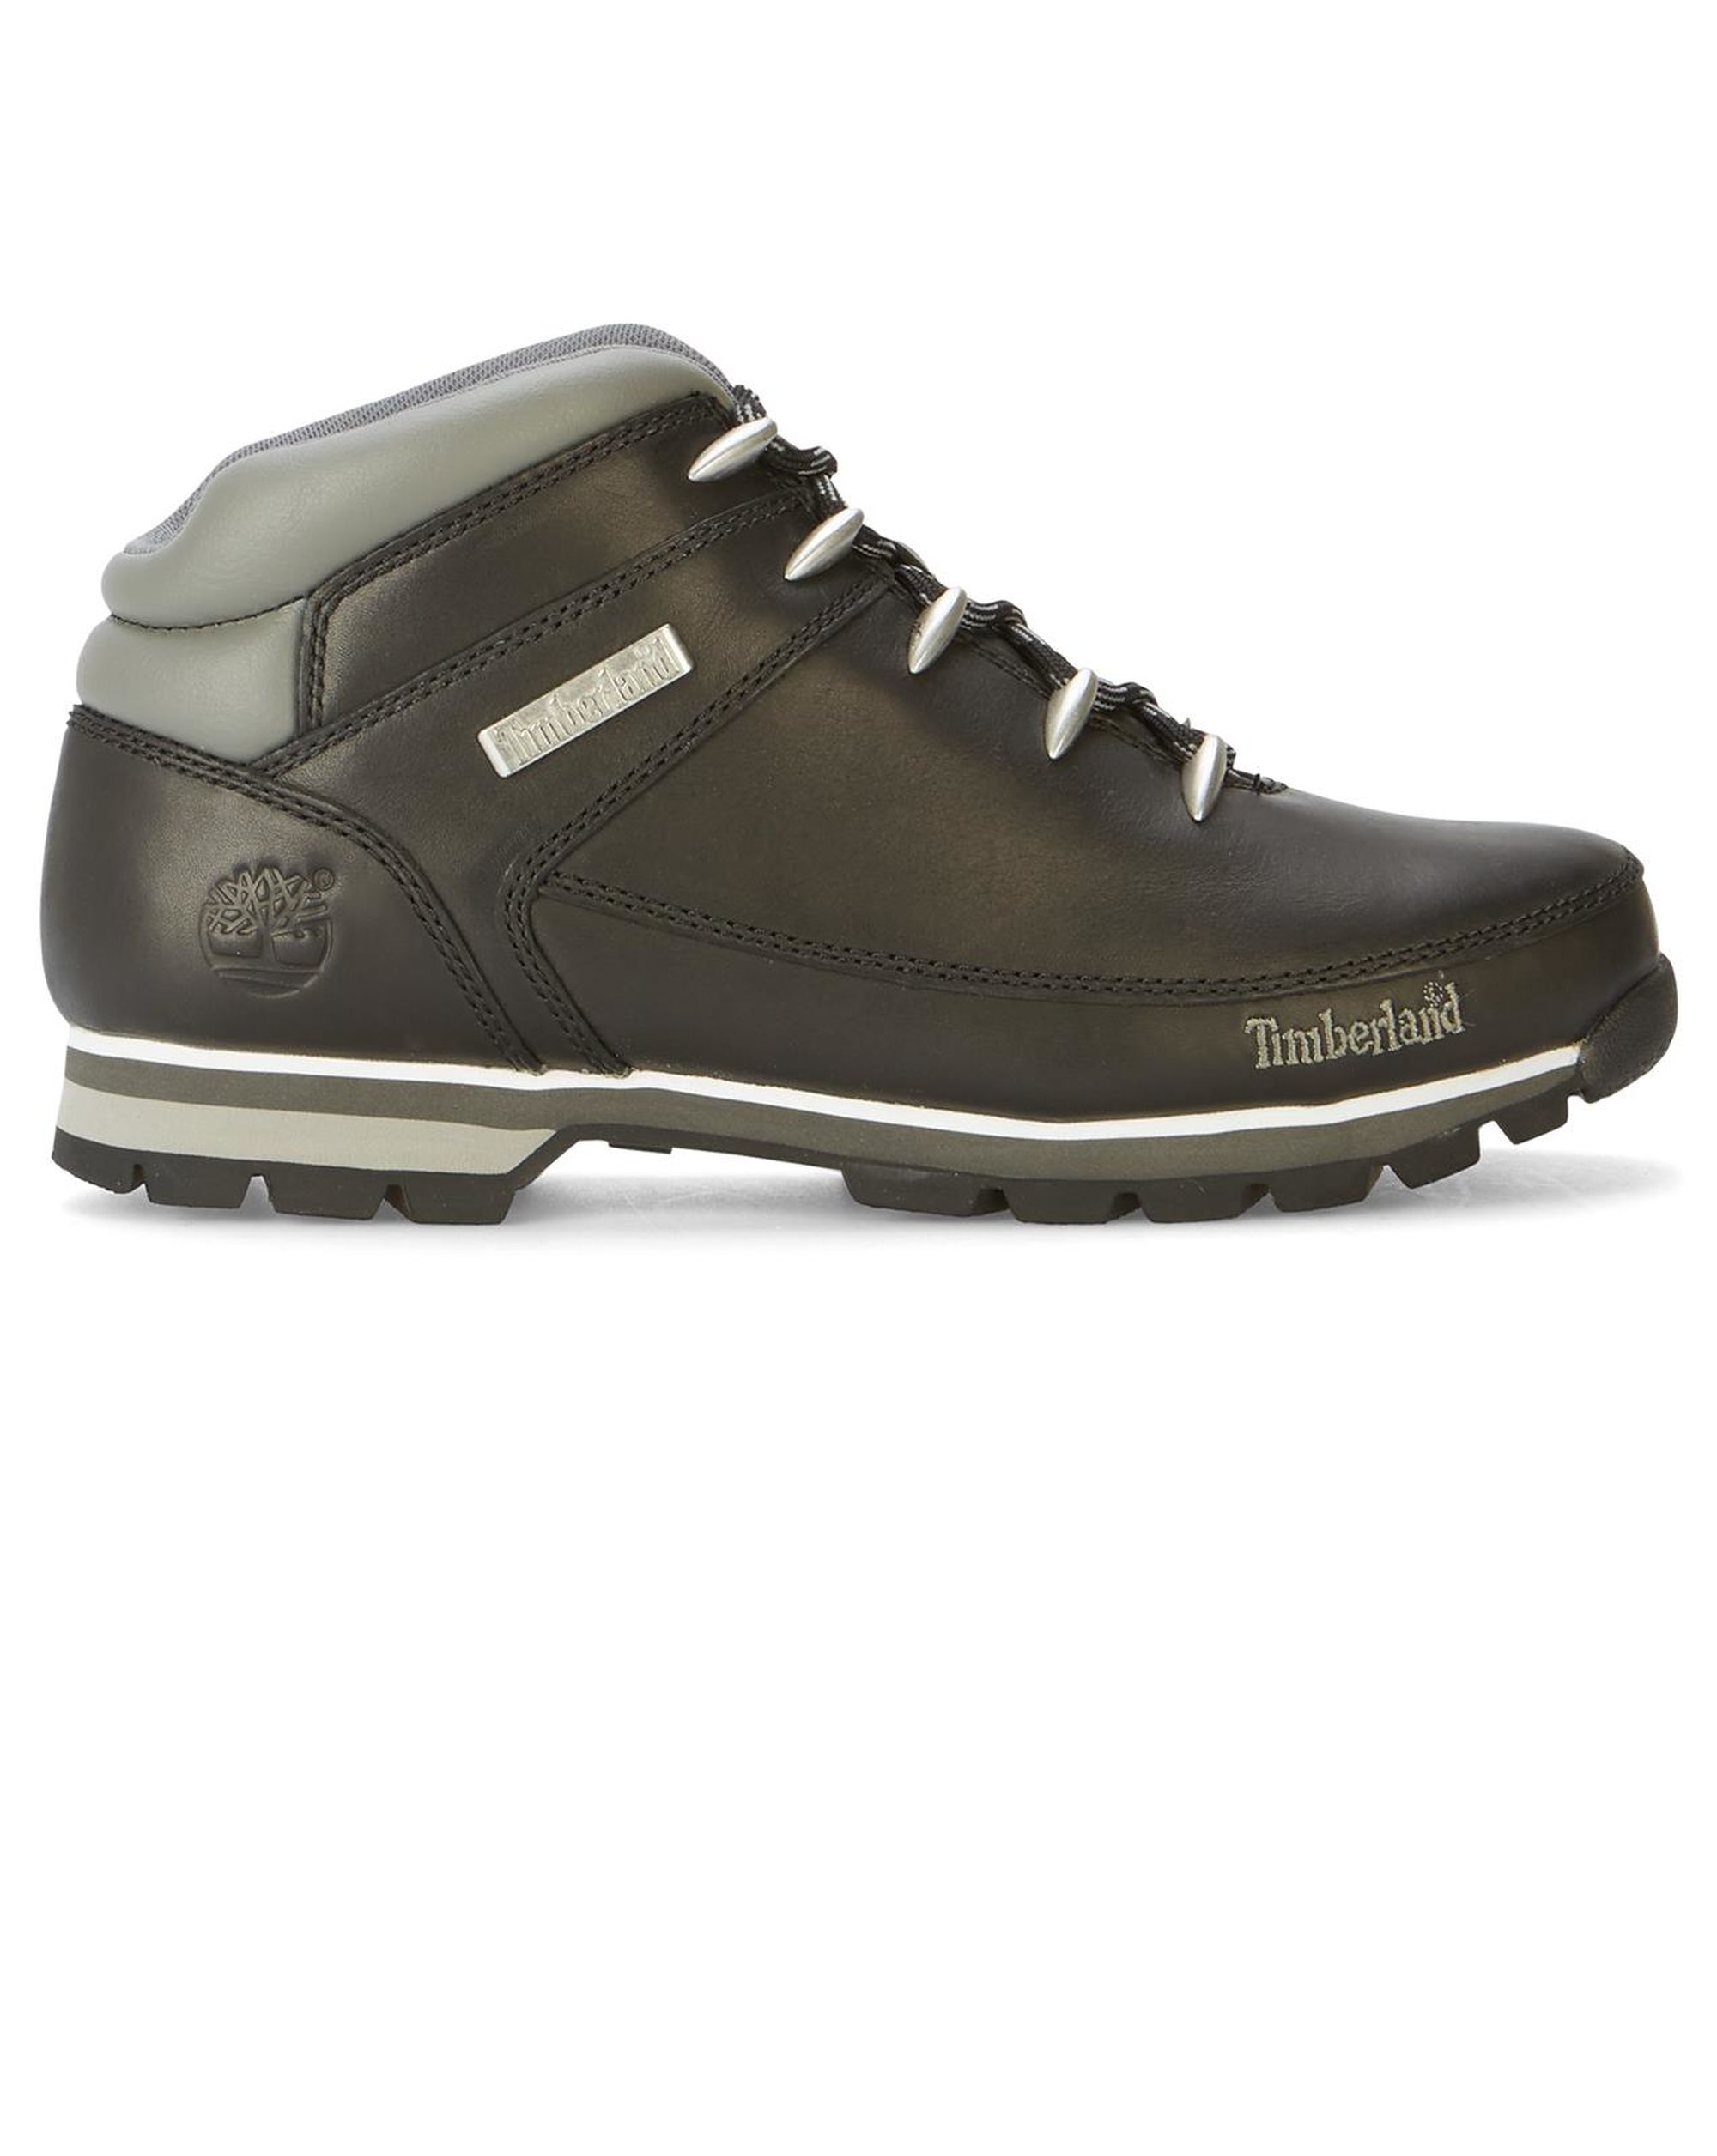 Simple  Men39s Heritage Euro Hiker 95100 Leather LaceUp Boot Brown  EBay